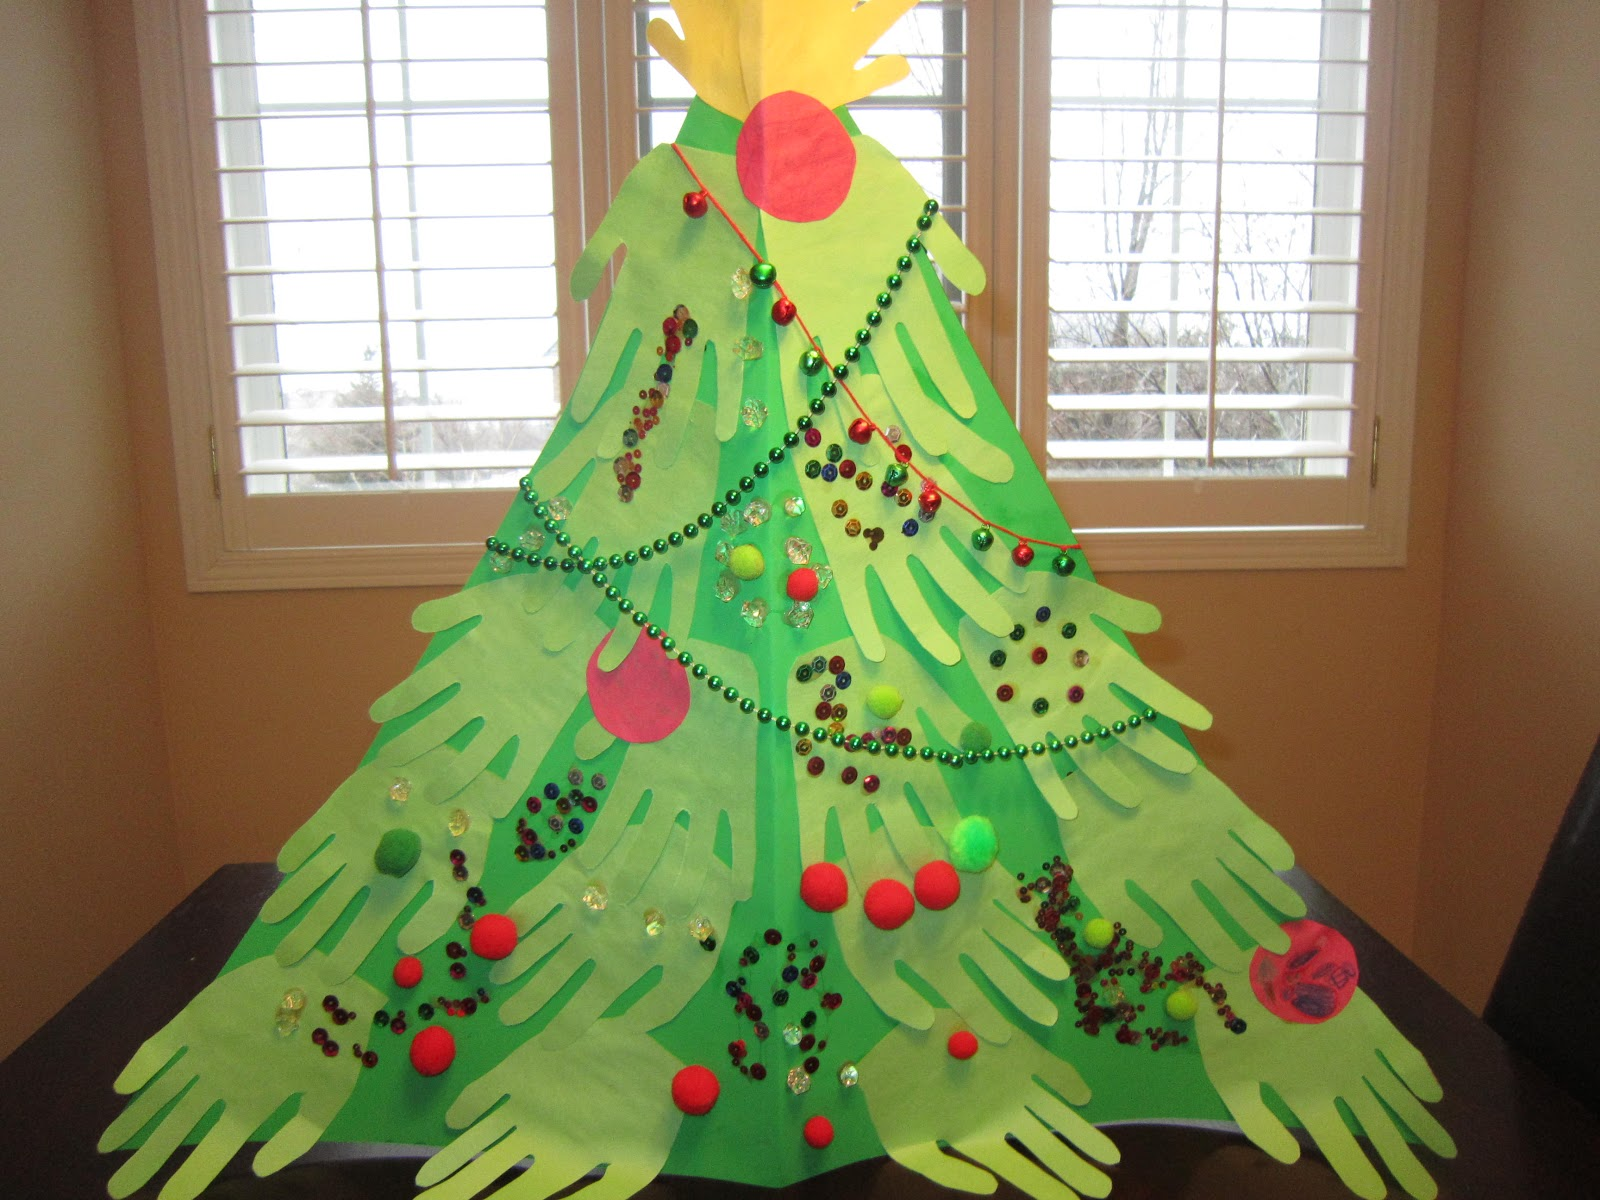 Handprint Christmas Craft Ideas Part - 45: Kidsu0027 Crafts